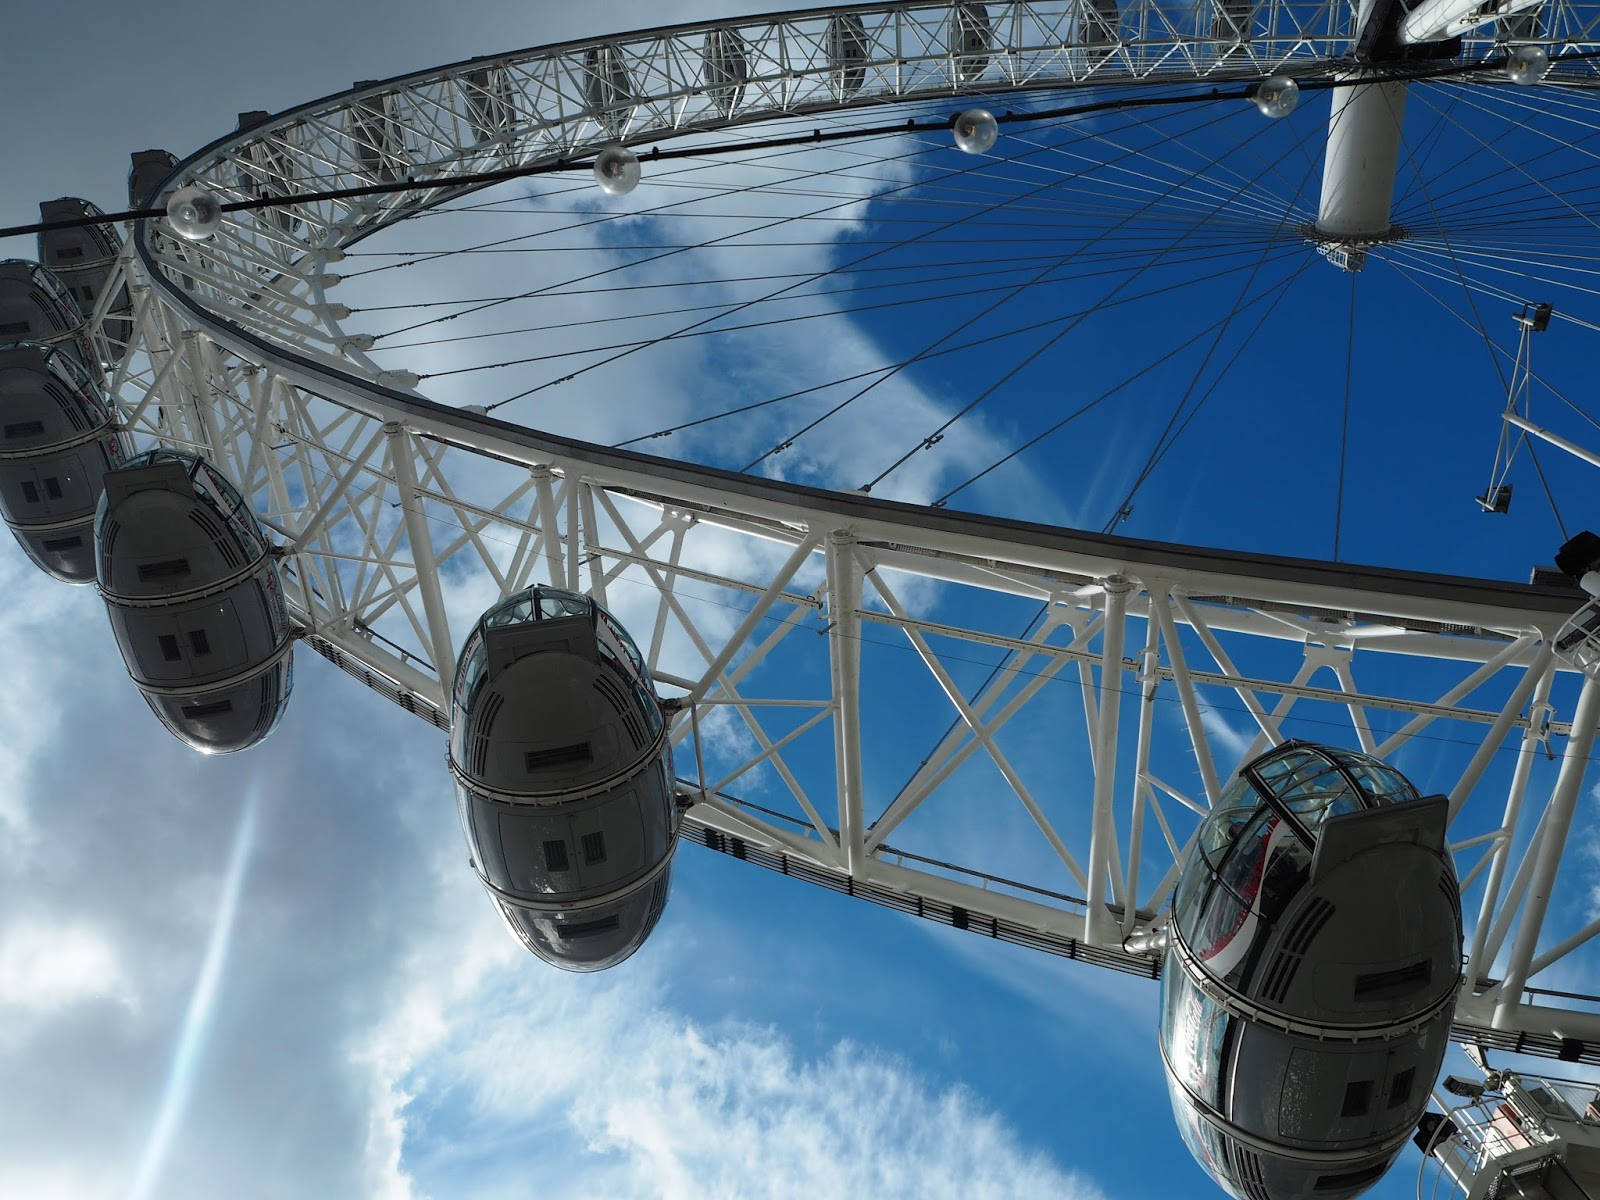 The London Eye, pods